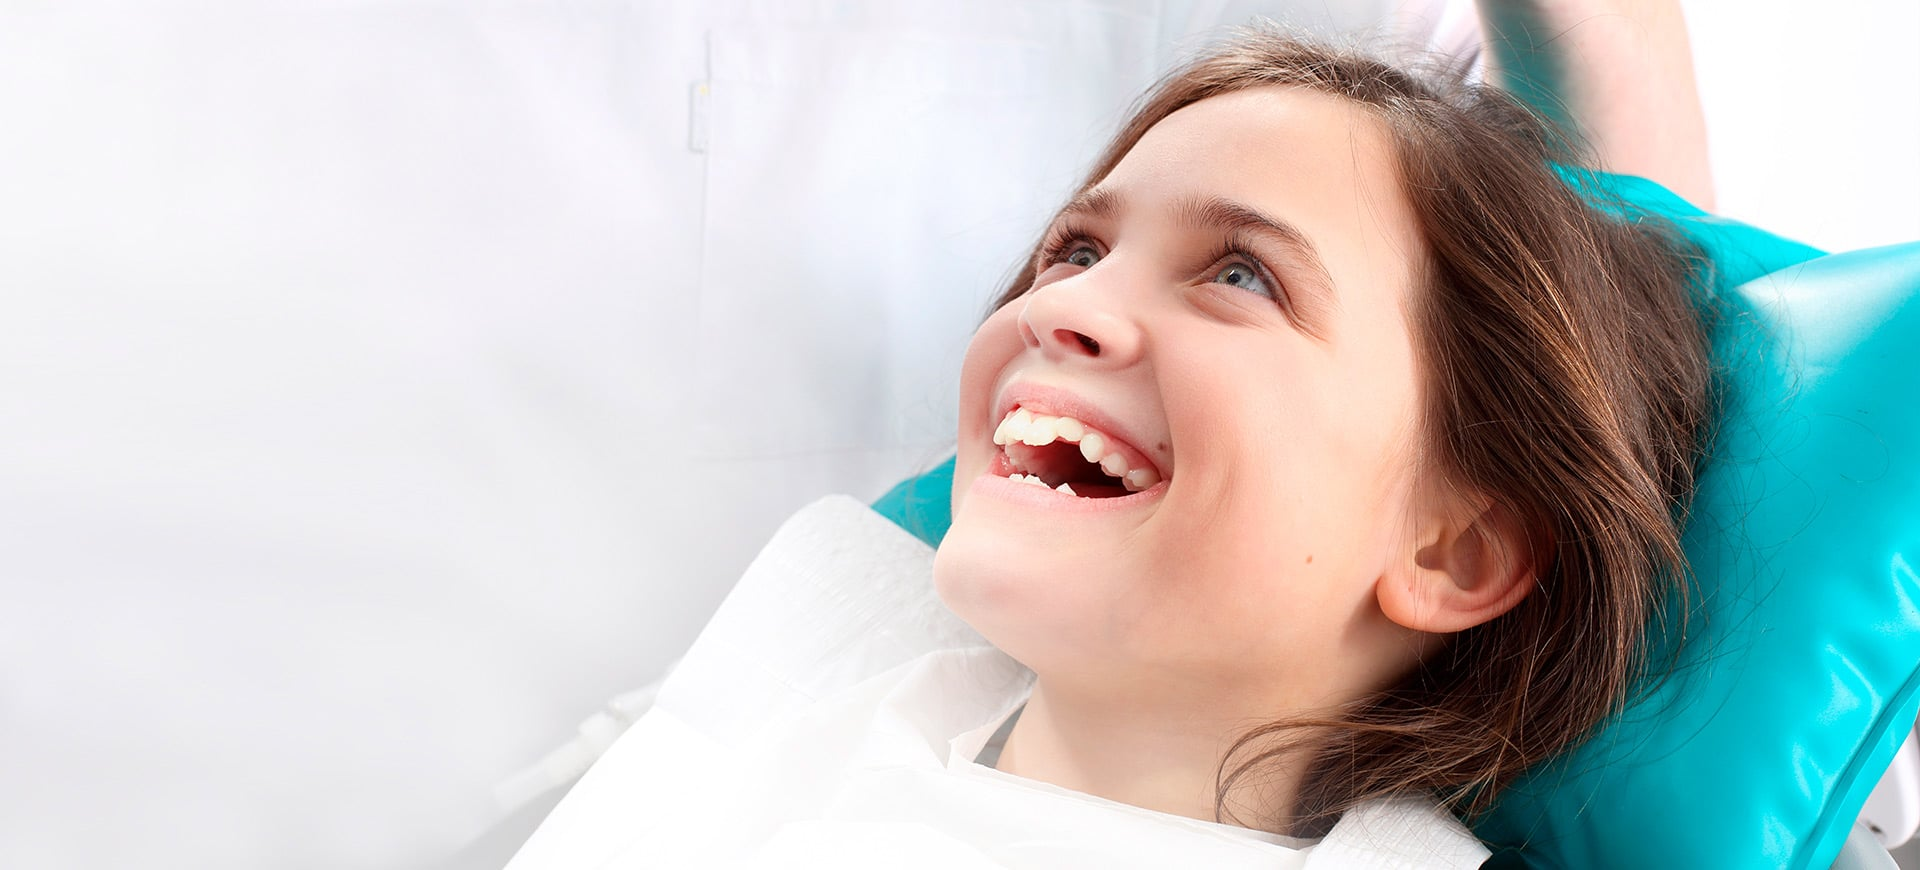 5 reasons to see an Orthodontist